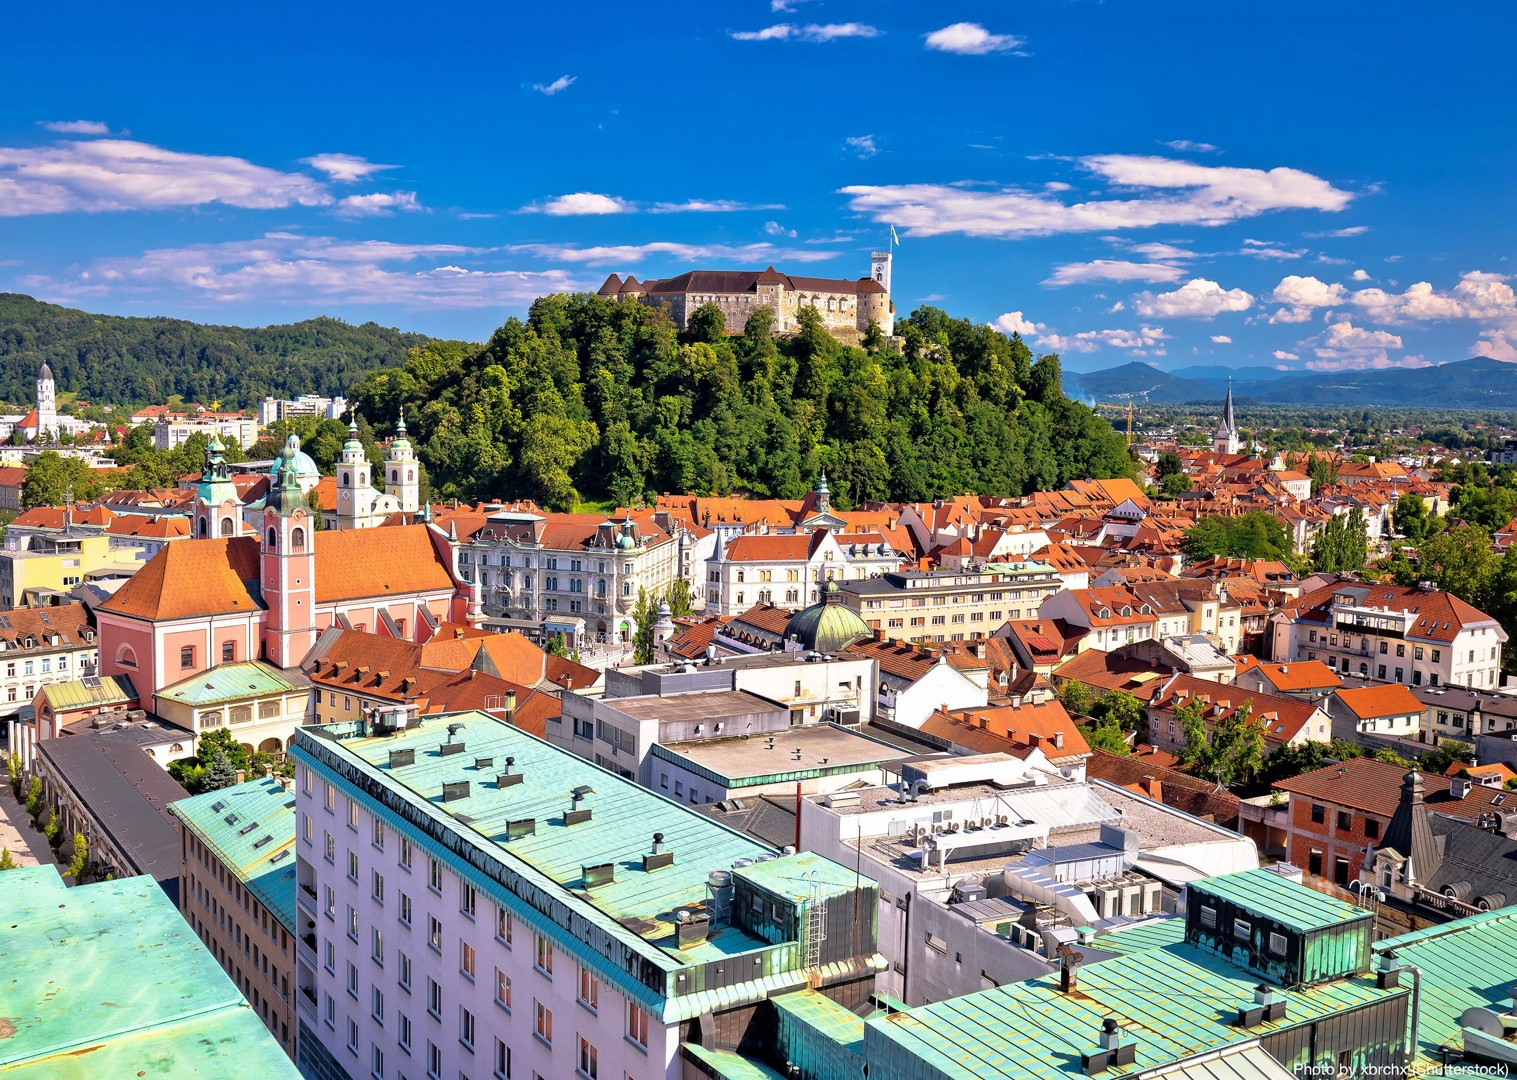 ljubljana-self-guided-leisure-cycling-holiday-slovenia-capital-to-coast.jpg - Slovenia - Capital to Coast - Leisure Cycling